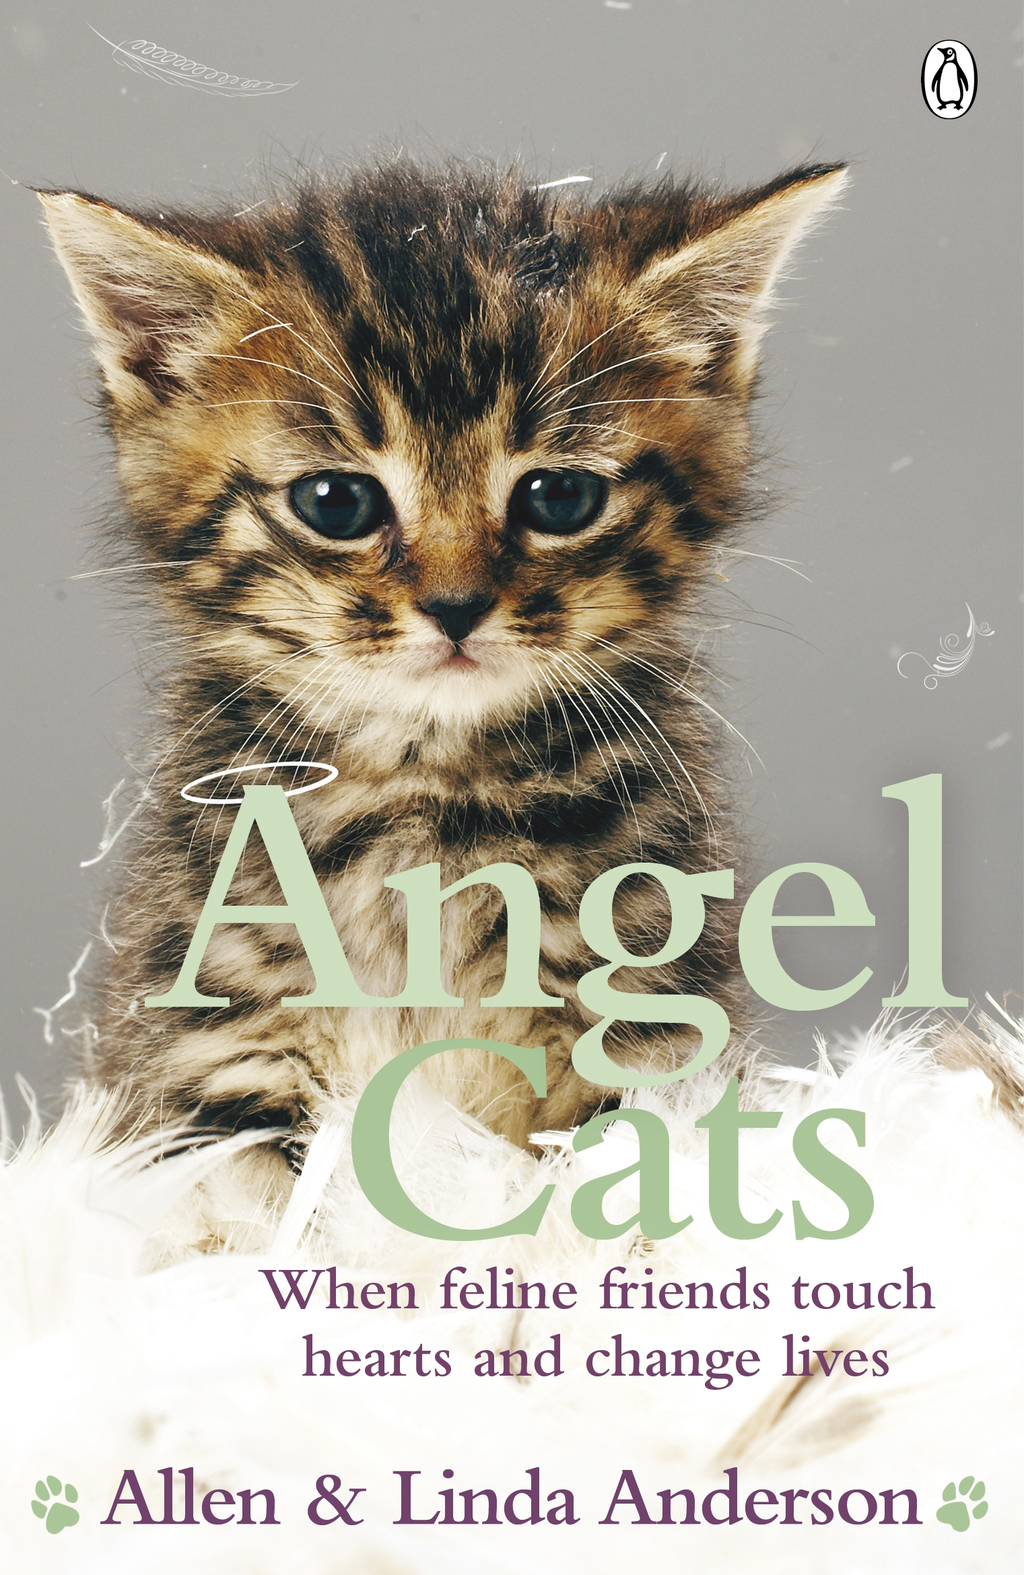 Angel Cats When feline friends touch hearts and change lives